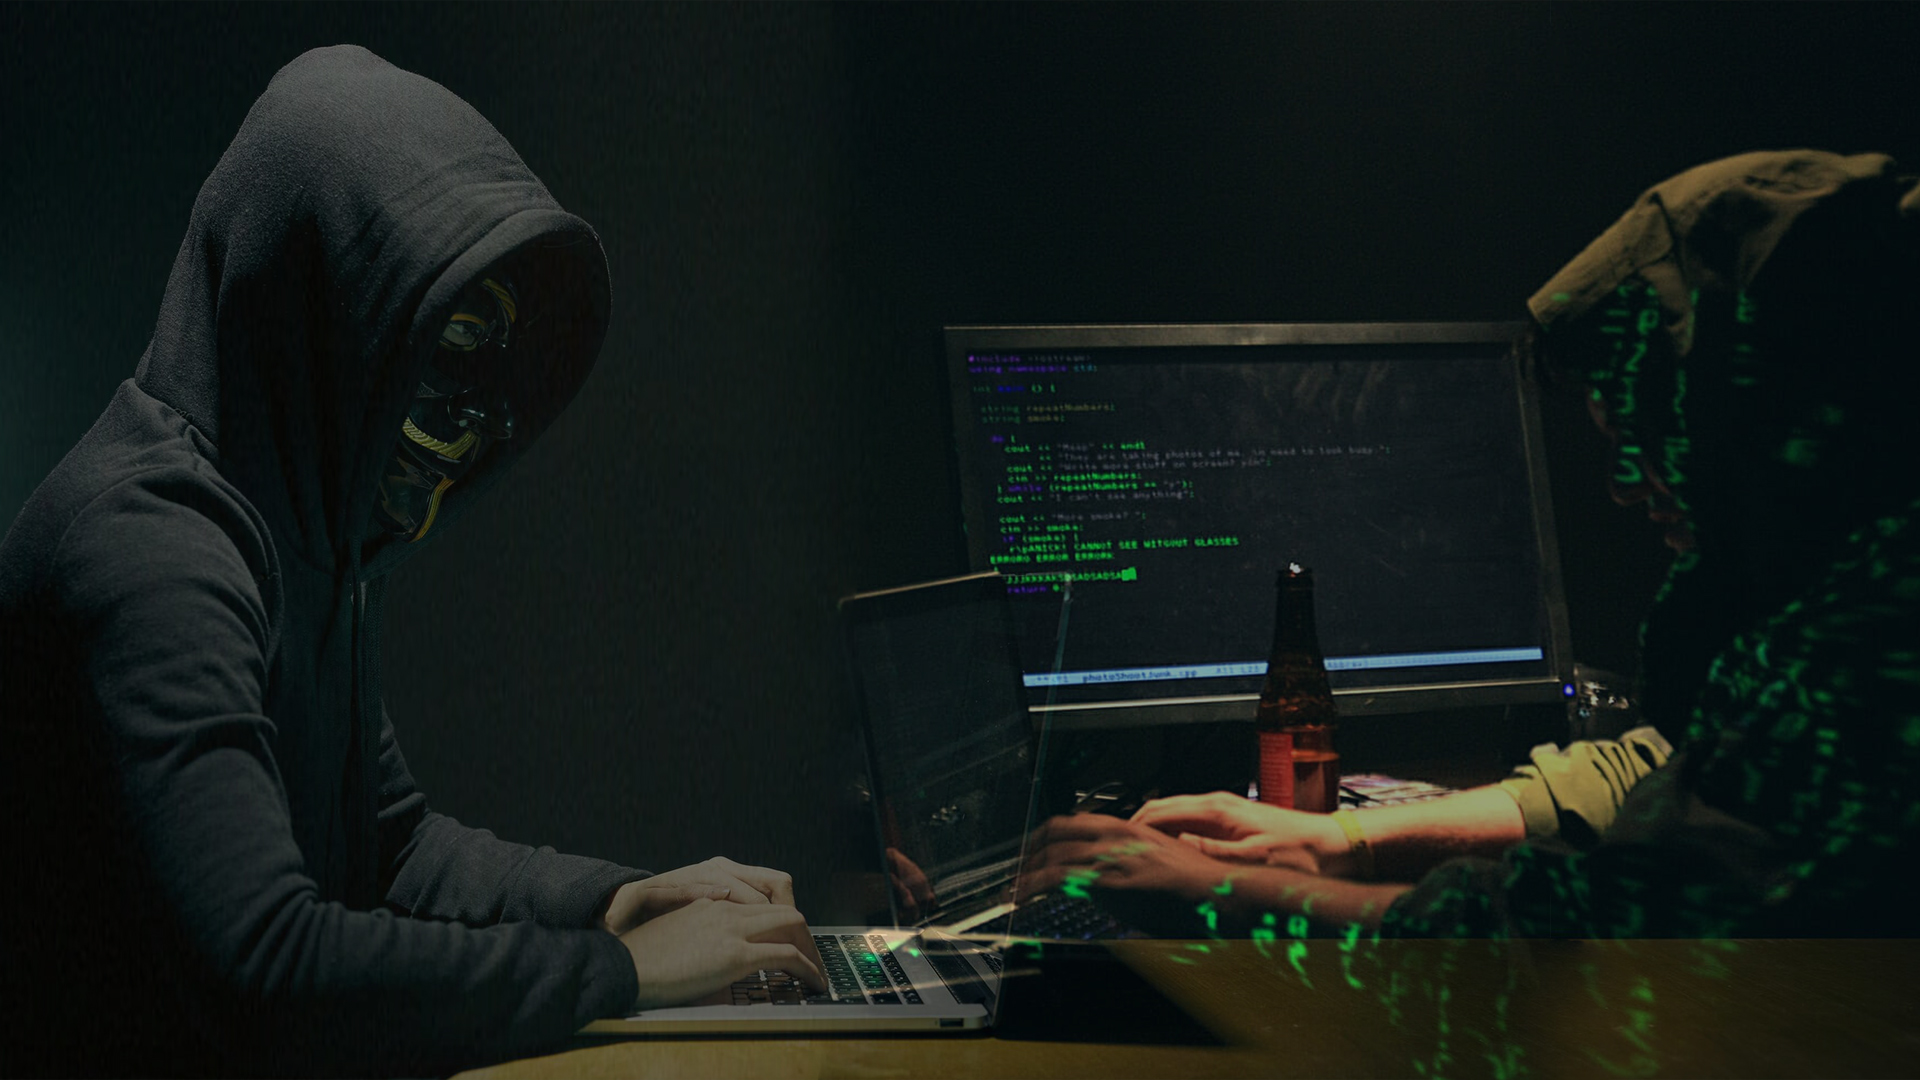 Hacker vs Hacker: when rivalry and revenge plague the Dark Web